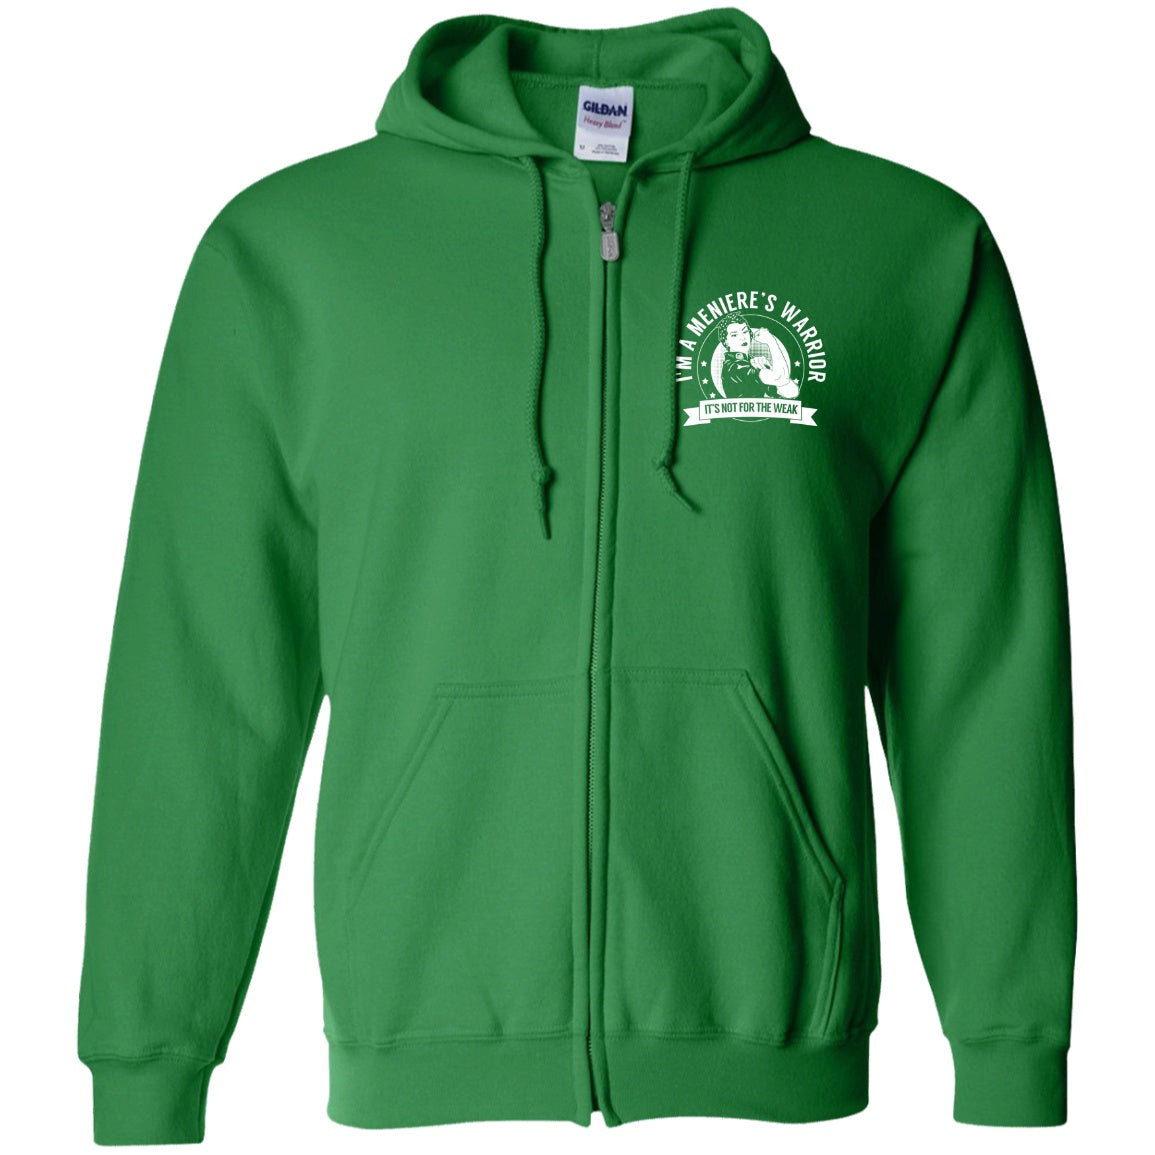 Meniere's Disease - Meniere's Warrior NFTW Zip Up Hooded Sweatshirt - The Unchargeables